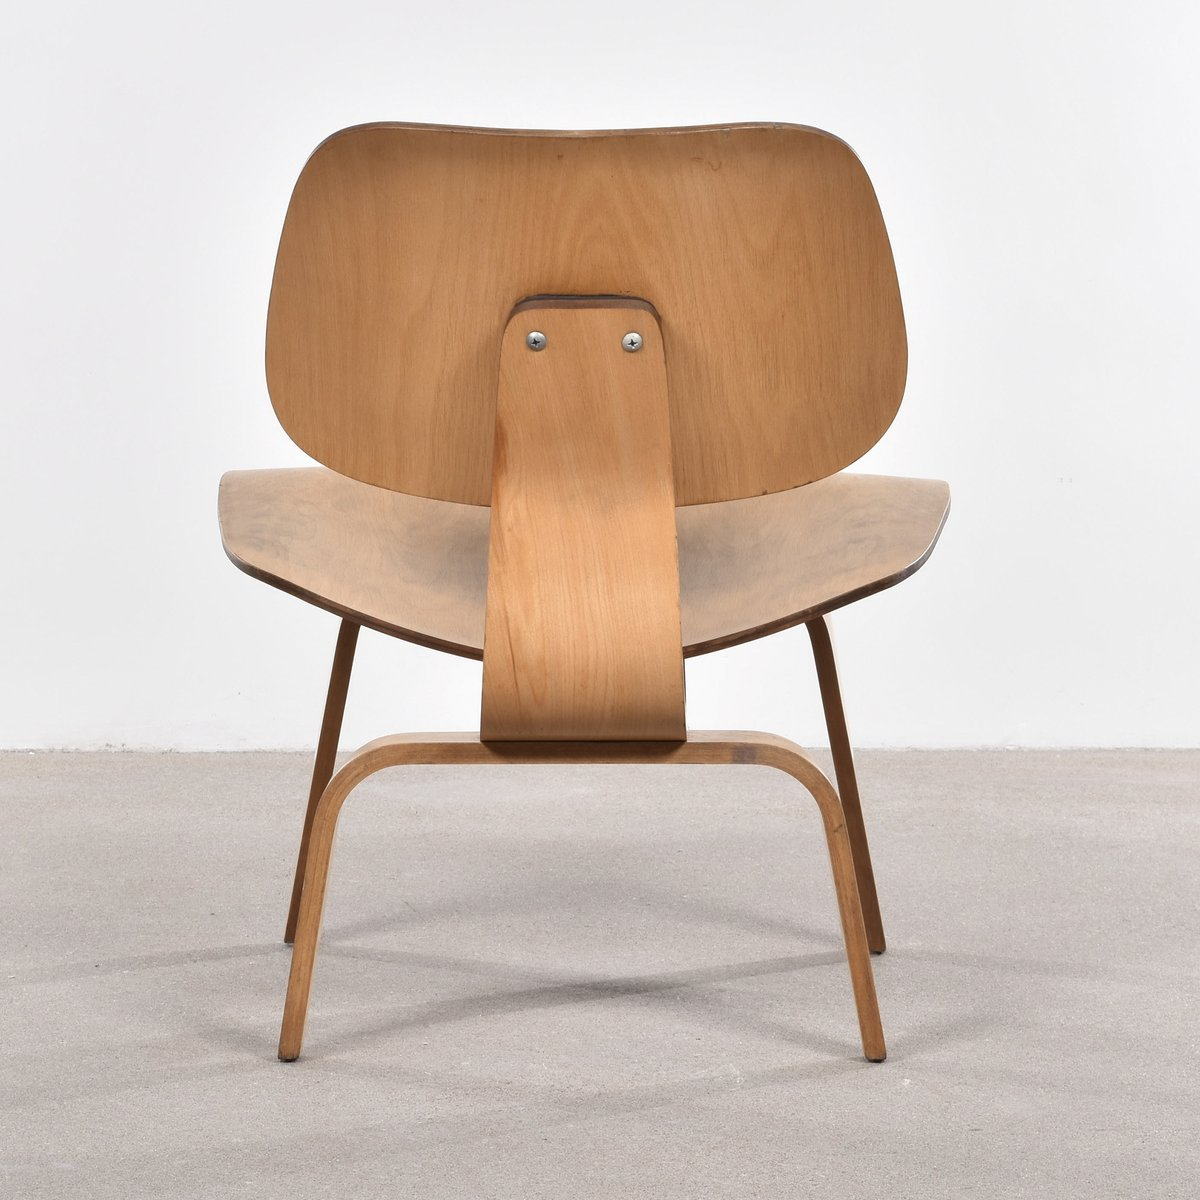 American lcw oak lounge chair by charles ray eames for - Charles eames and ray eames ...